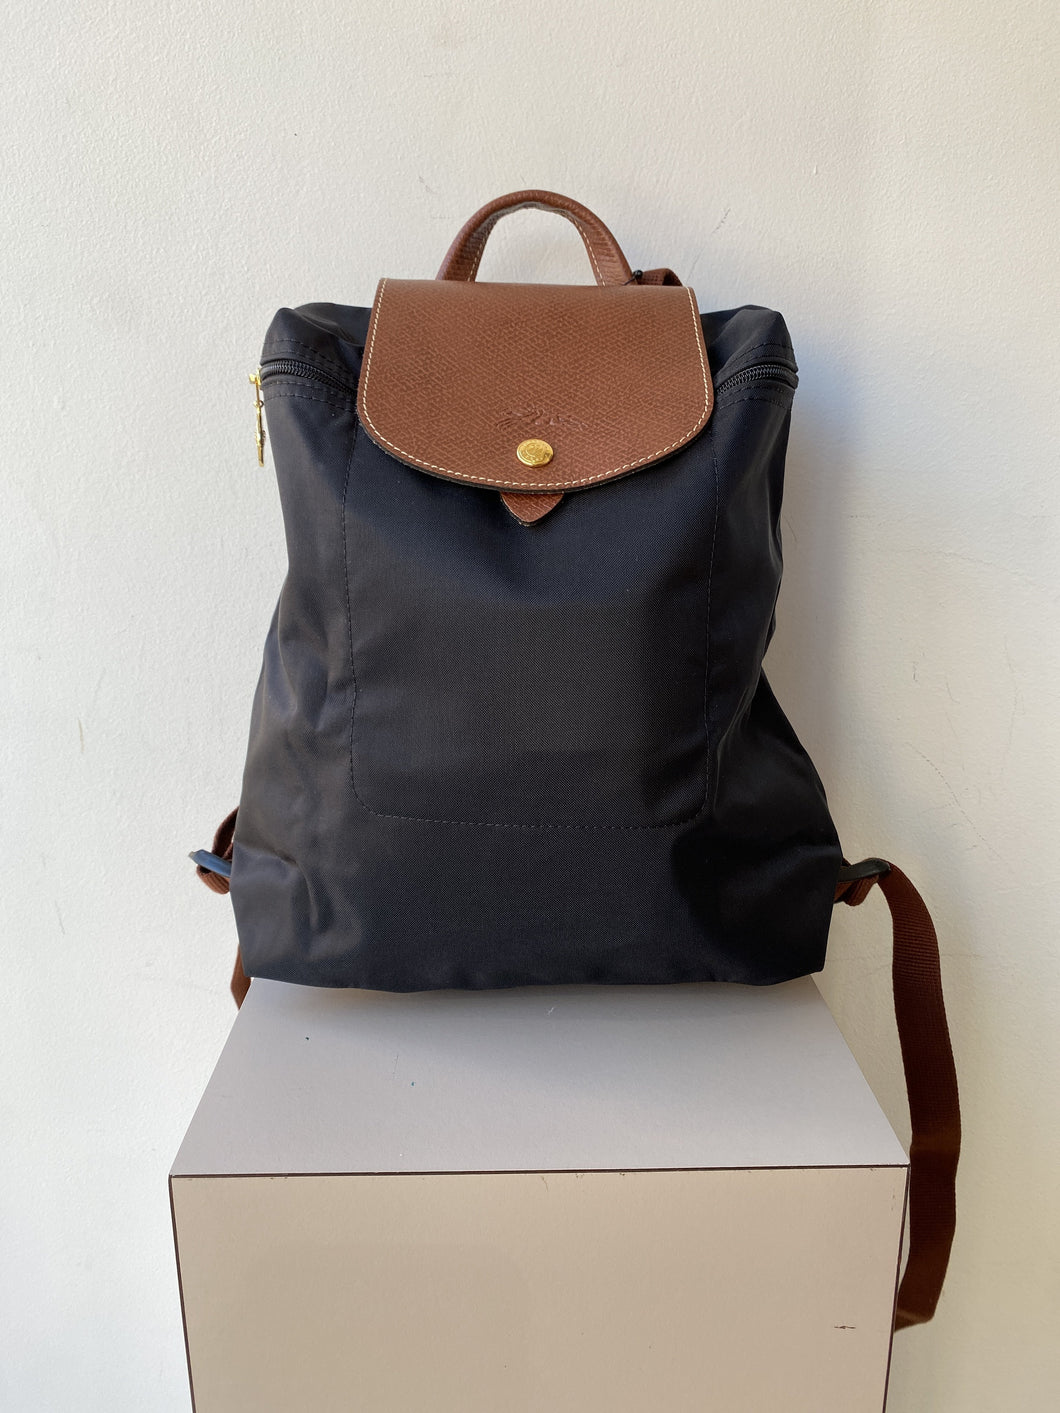 Longchamp Le Pliage black nylon backpack NWT - My Girlfriend's Wardrobe York Pa